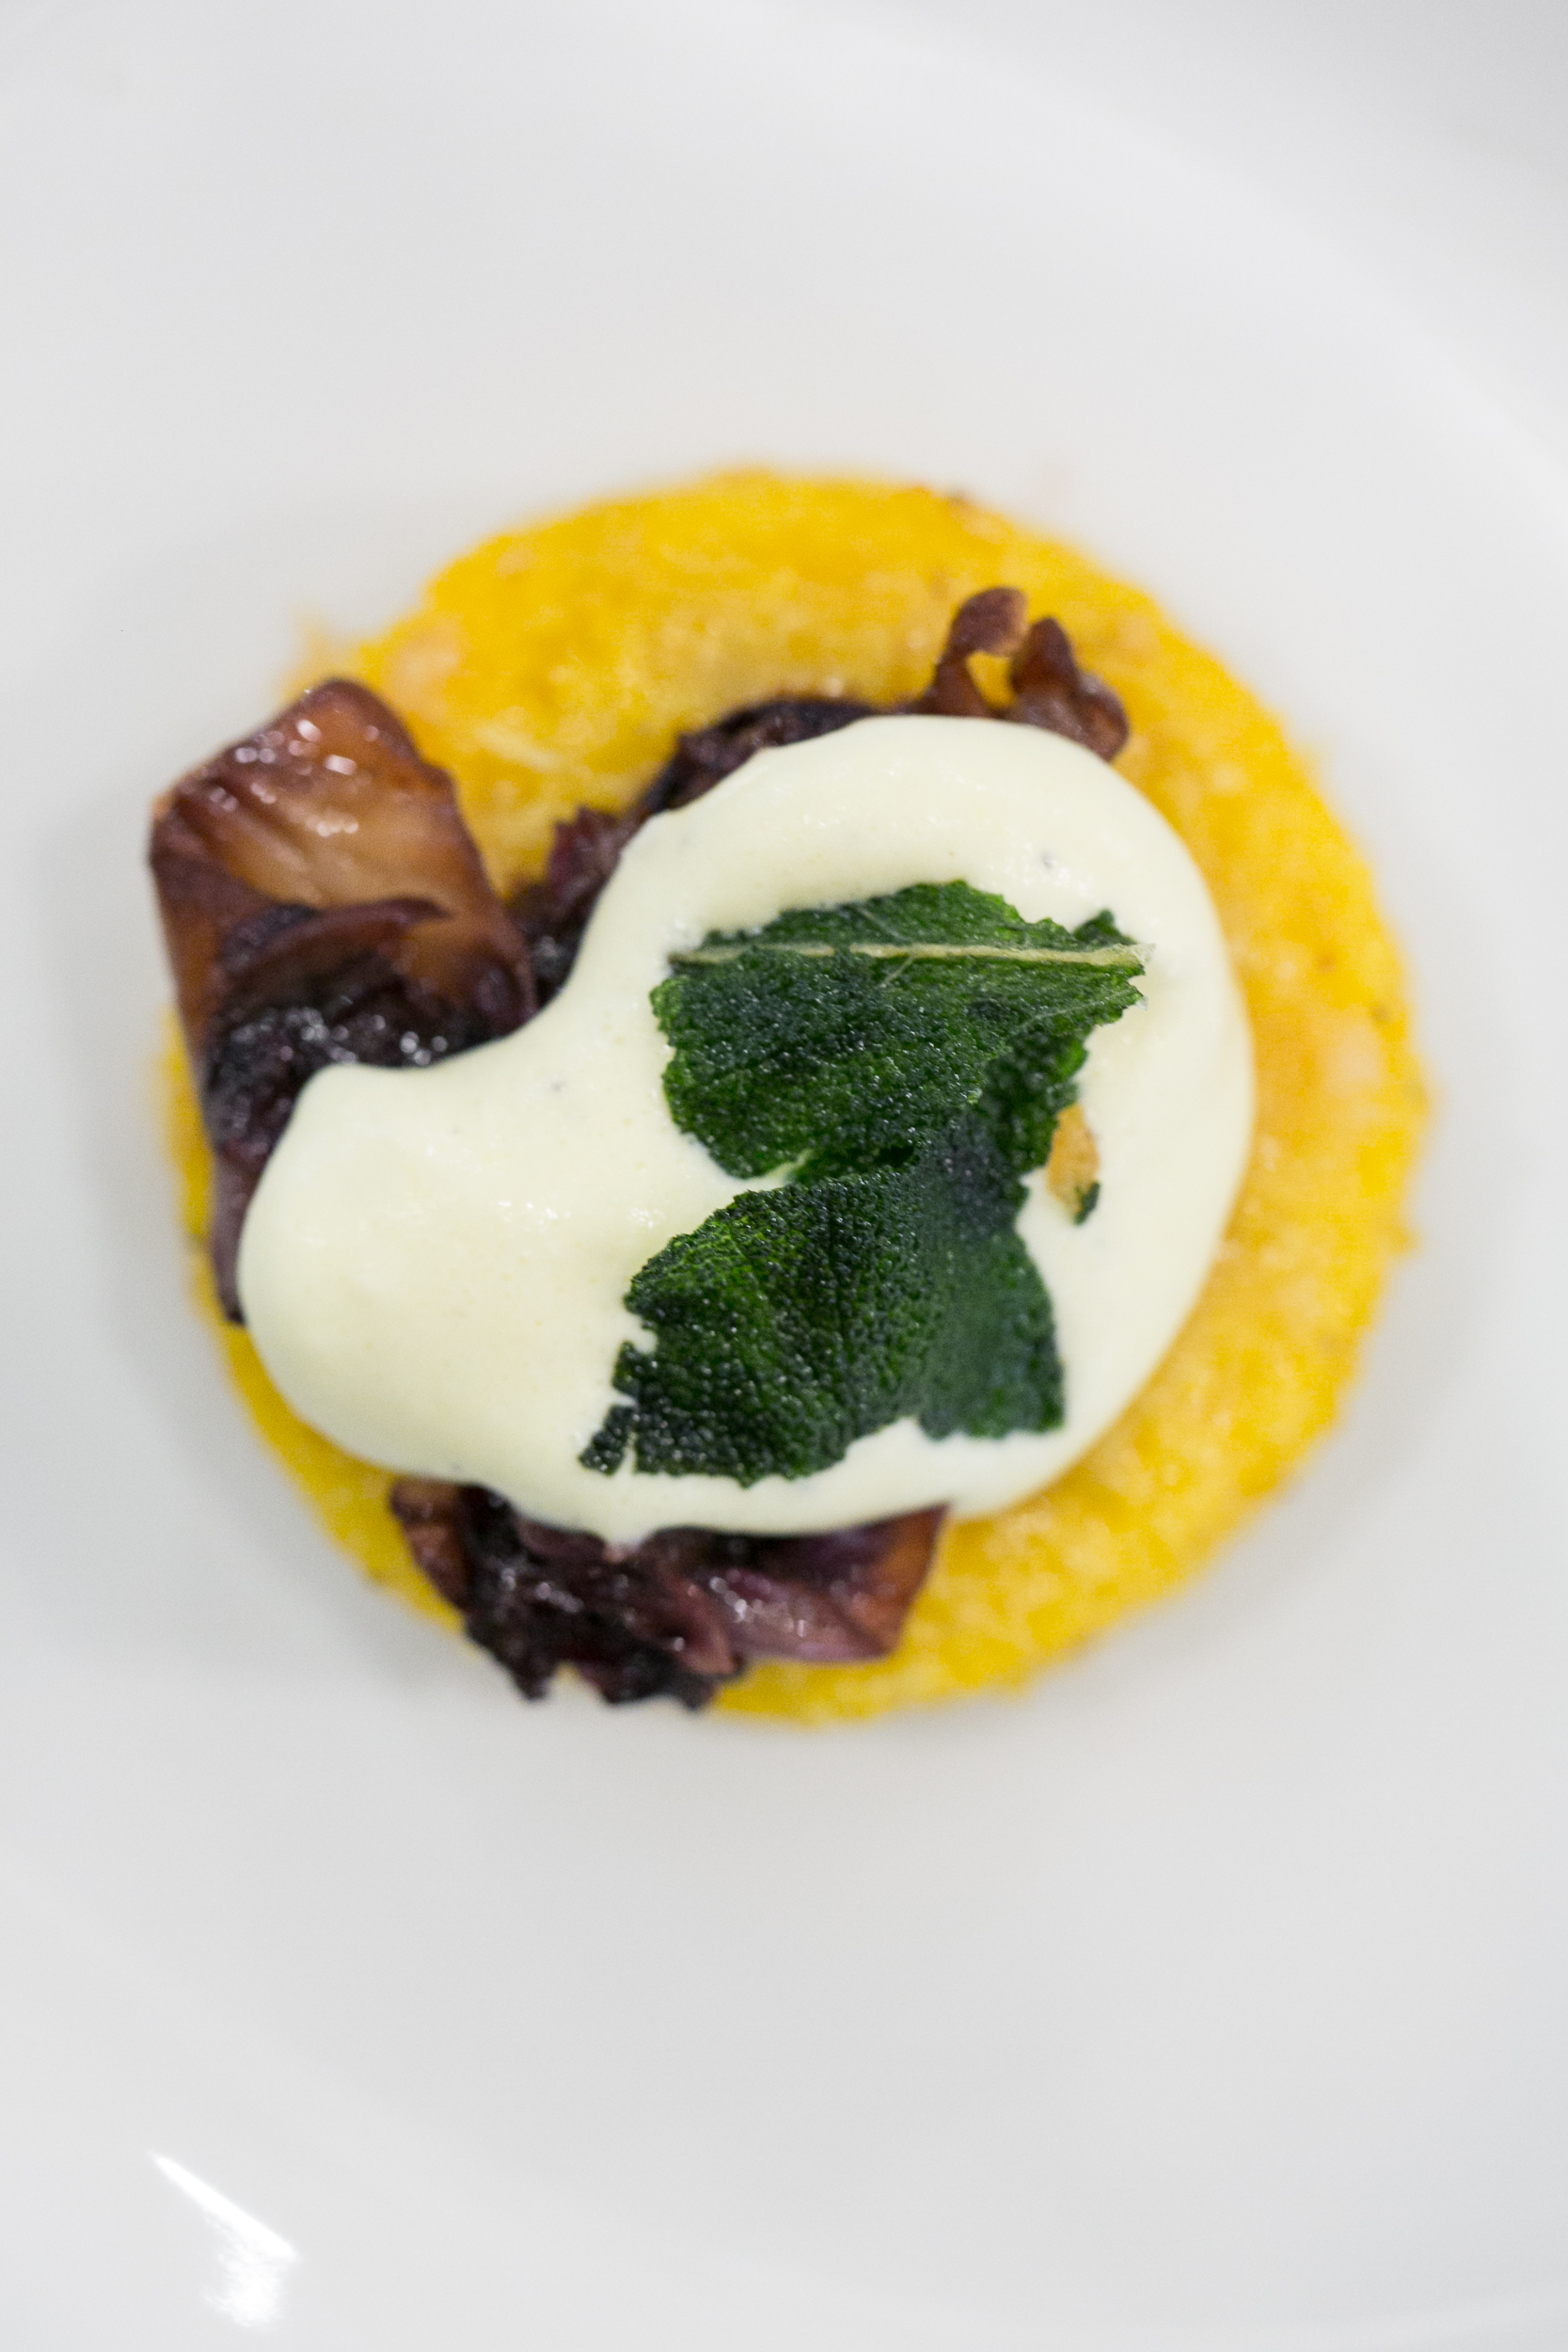 Inspiring Kitchen butternut squash polenta with parmigiano